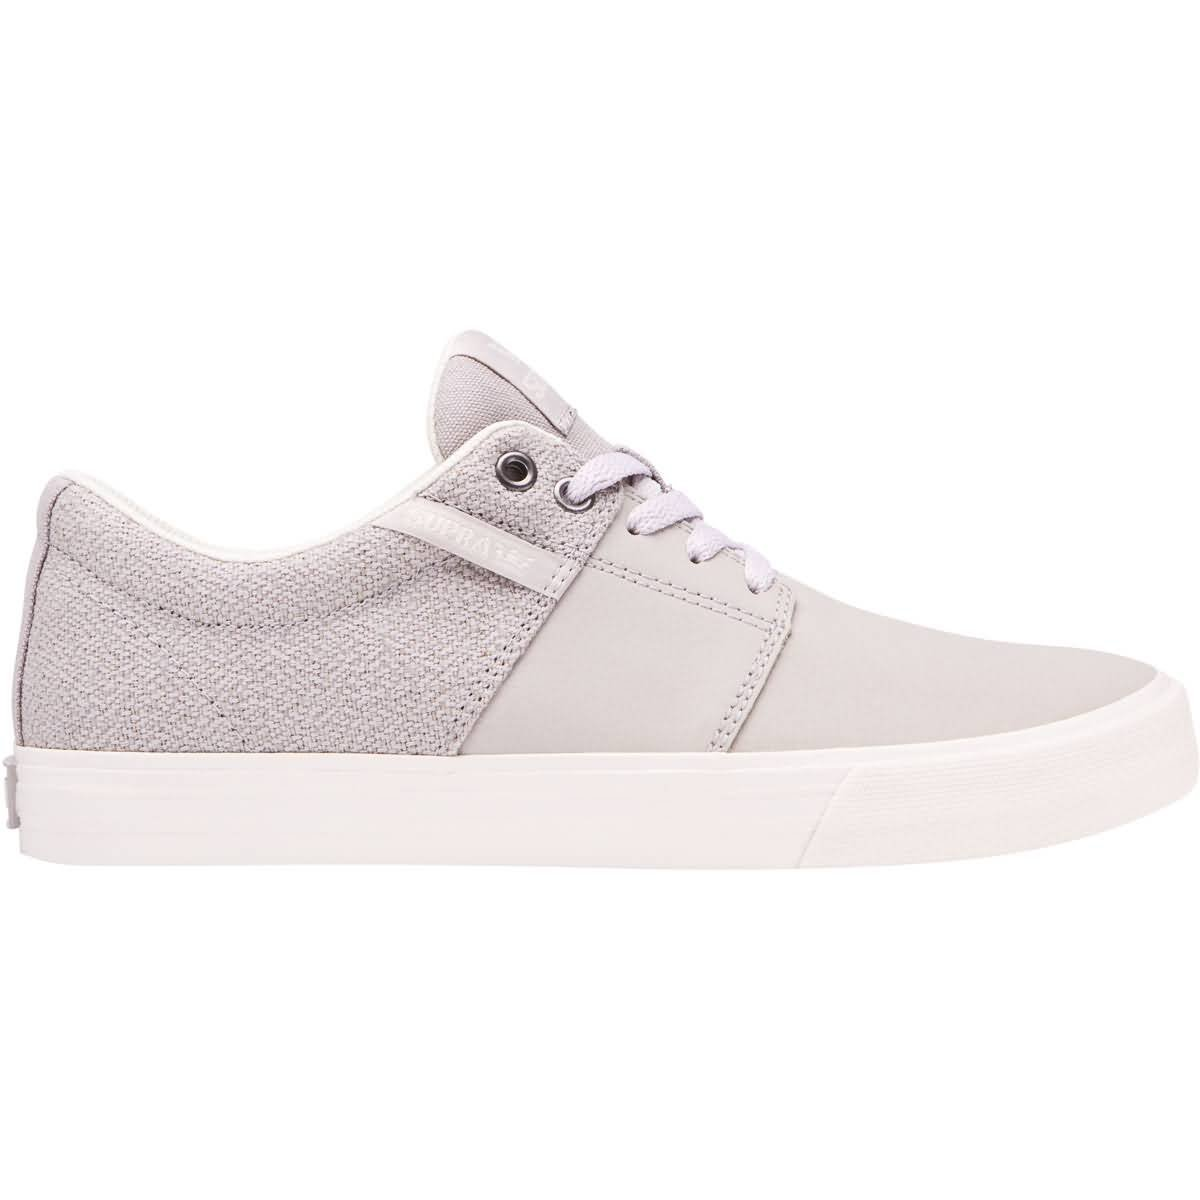 d5a912229a Galleon - Supra Men's Stacks II Vulc Shoes,11.5,Silver Cloud-Bone